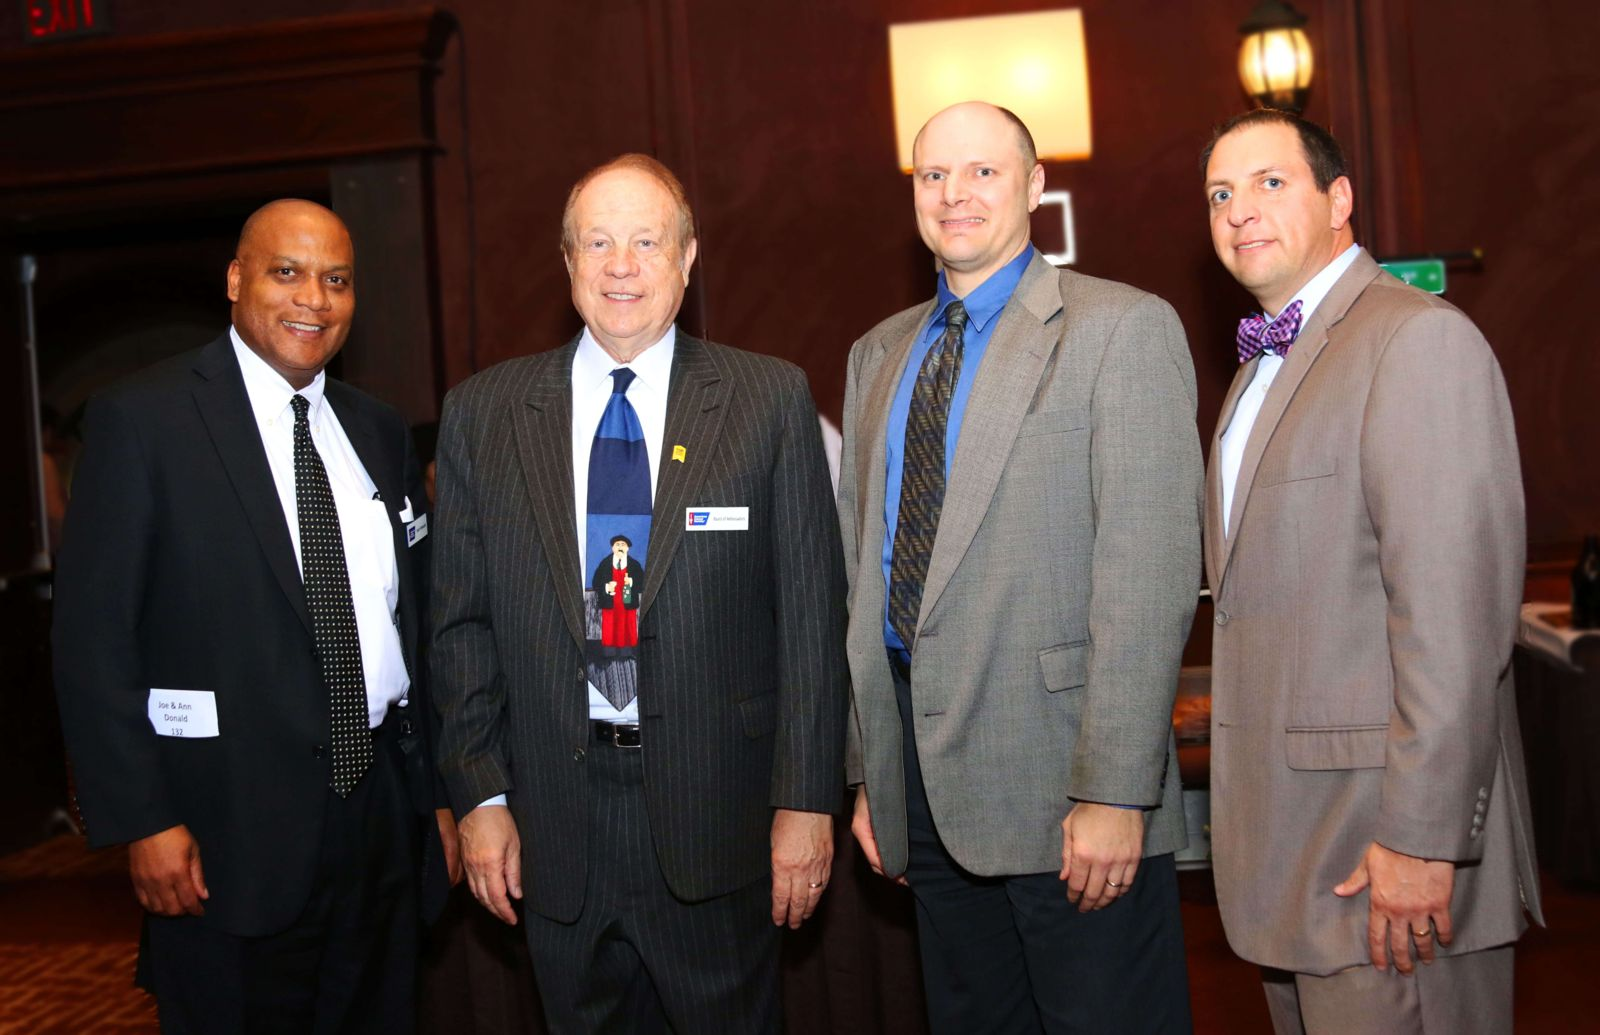 Keynote speaker judge joe donald, Mike Hupy, Todd korb, and Tom perlberg and american cancer society event